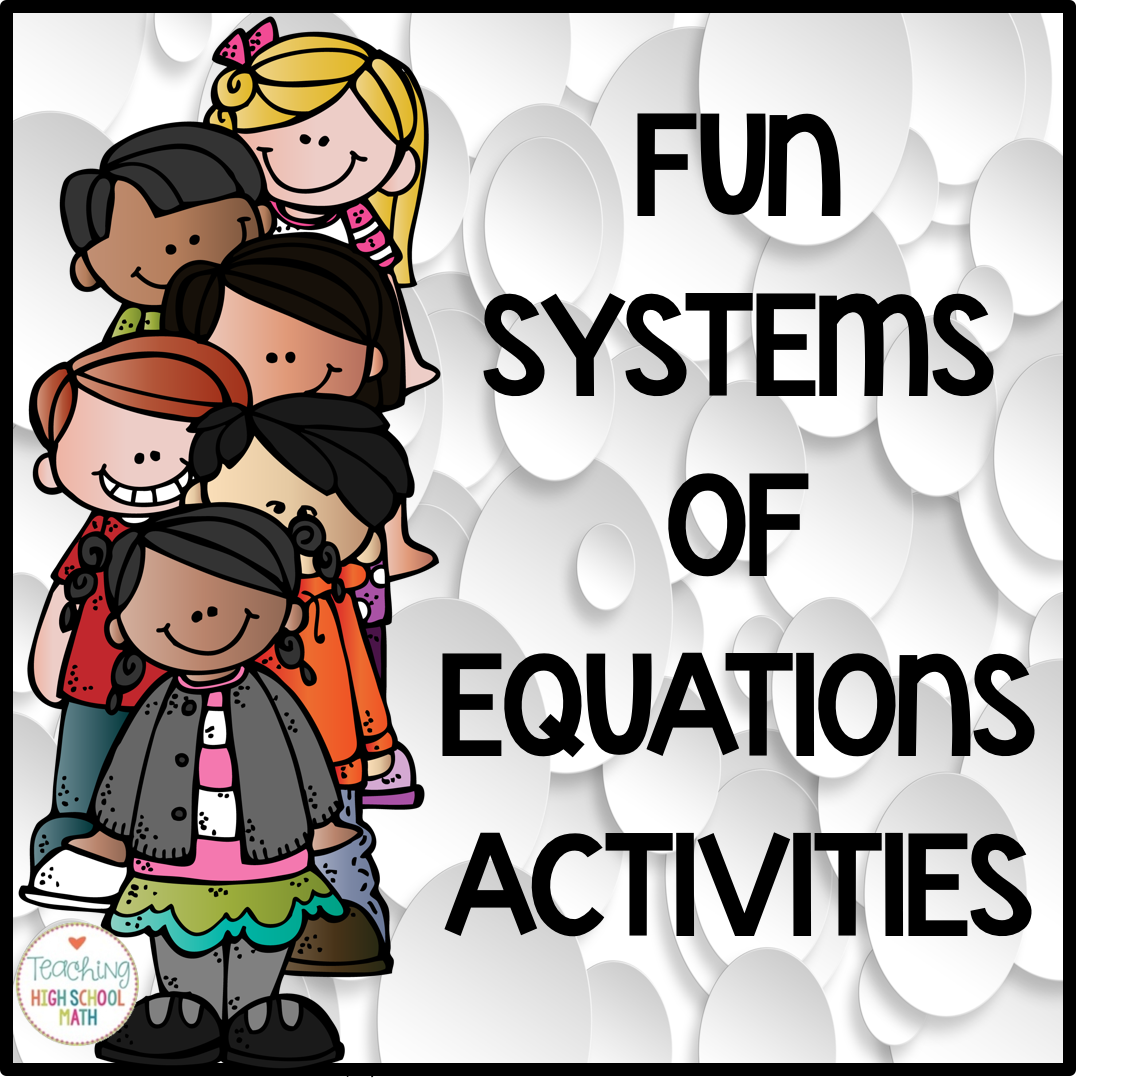 Teaching High School Math Fun Systems Of Equations Activities